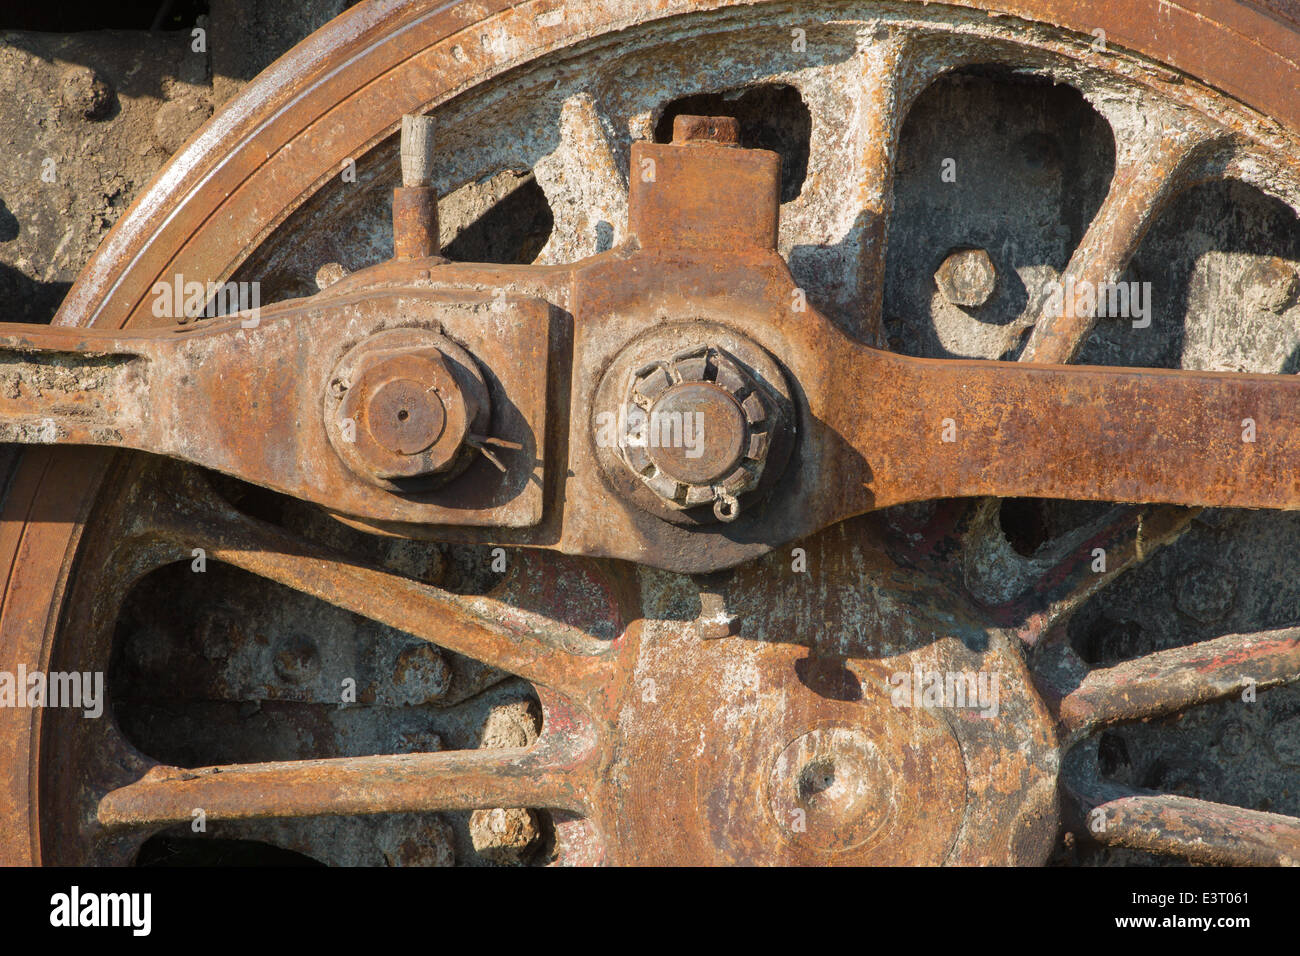 detail of driving rod mechanism on old steam locomotive in rust - Stock Image